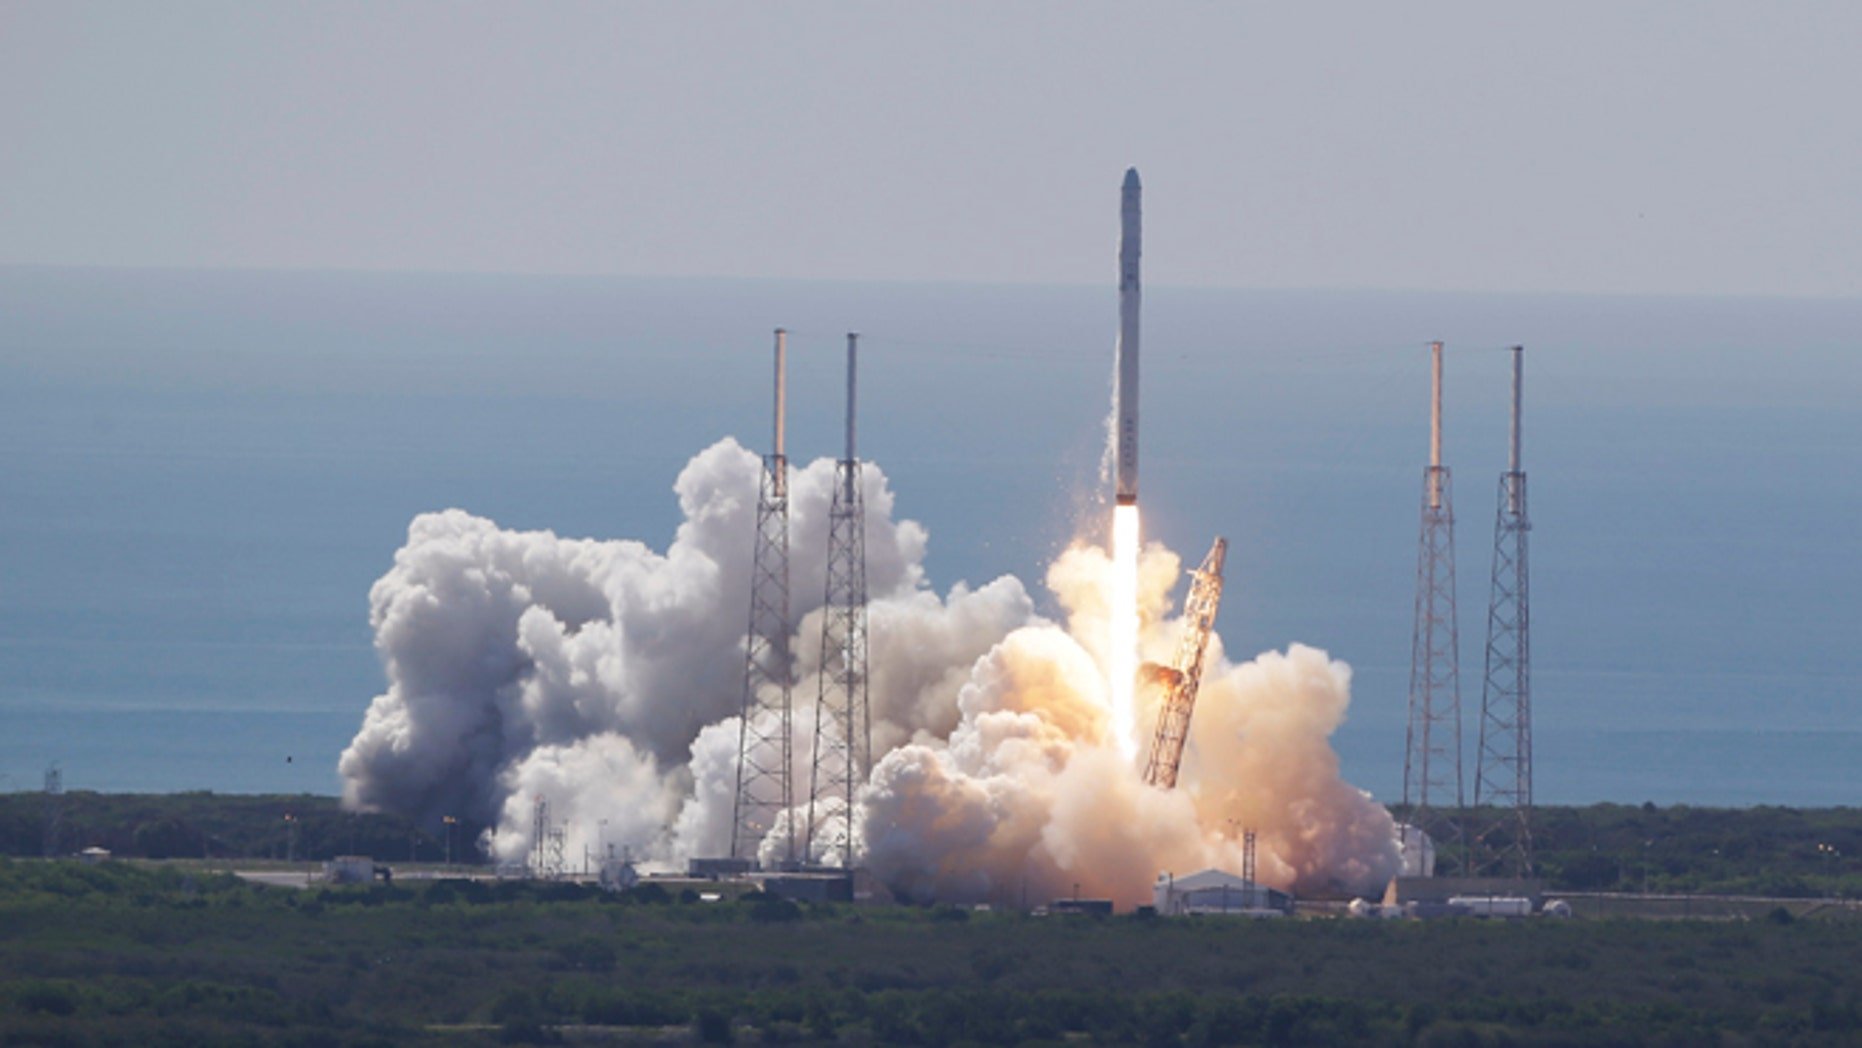 The SpaceX Falcon 9 rocket and Dragon spacecraft lifts off from Space Launch Complex 40 at the Cape Canaveral Air Force Station in Cape Canaveral, Fla., Sunday, June 28, 2015. The rocket carrying supplies to the International Space Station broke apart shortly after liftoff. (AP Photo/John Raoux)